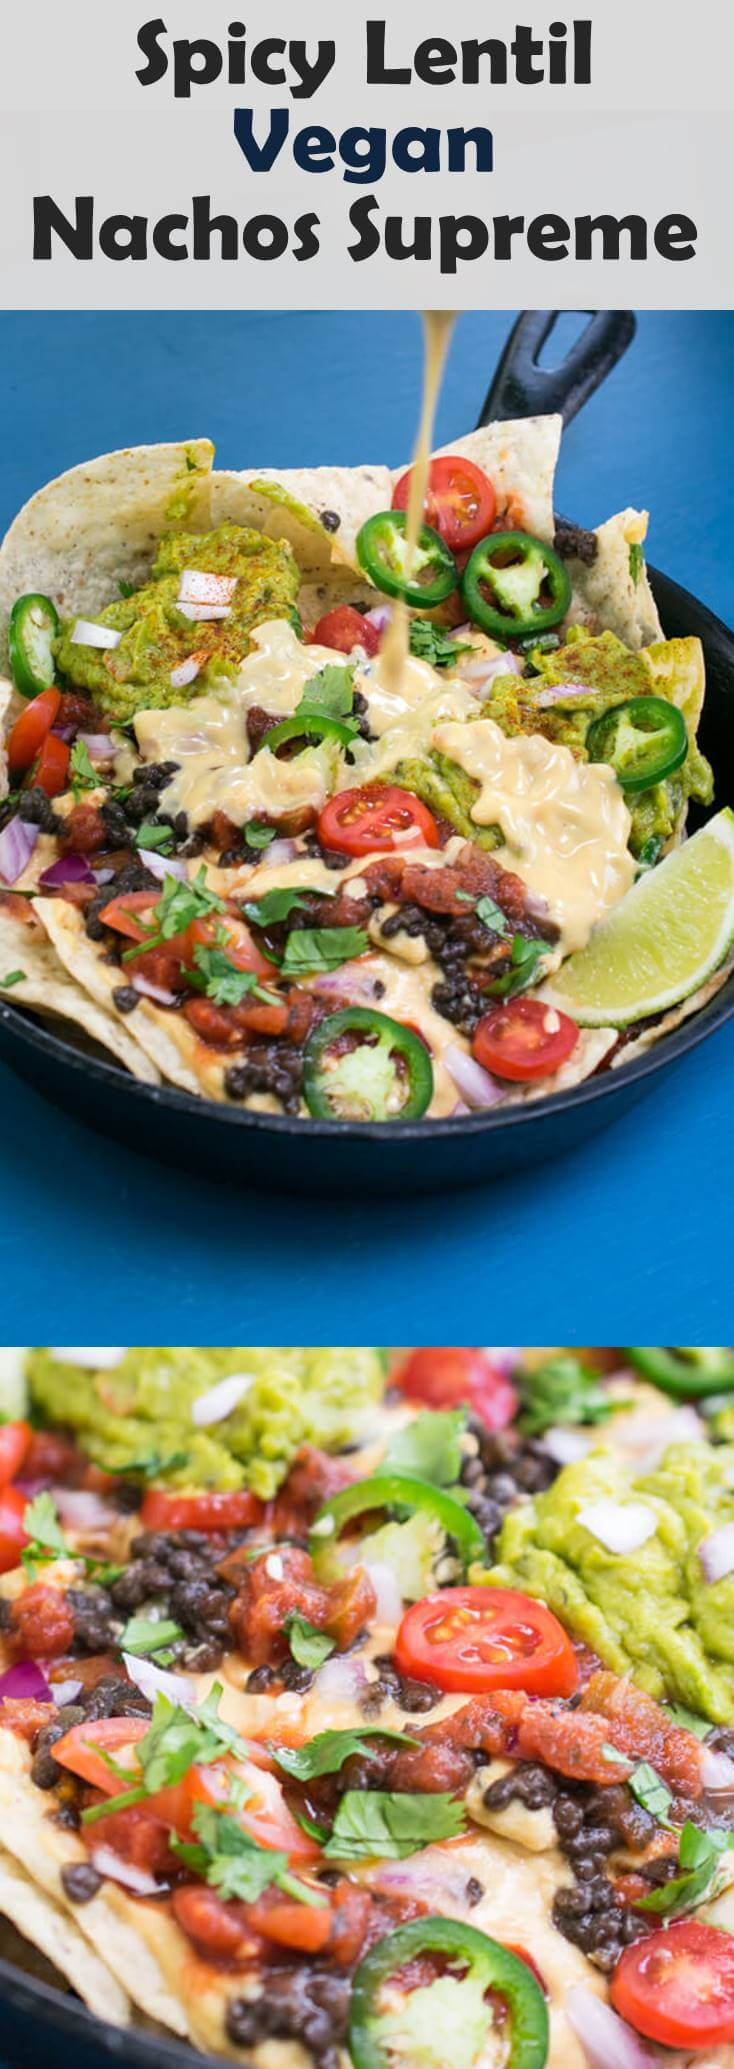 Vegan nachos platter with spicy lentils, salsa, homemade cashew queso, jalapenos, cilantro, red onion... in other words, the works! Amazing vegetarian dairy-free nachos made to your liking!